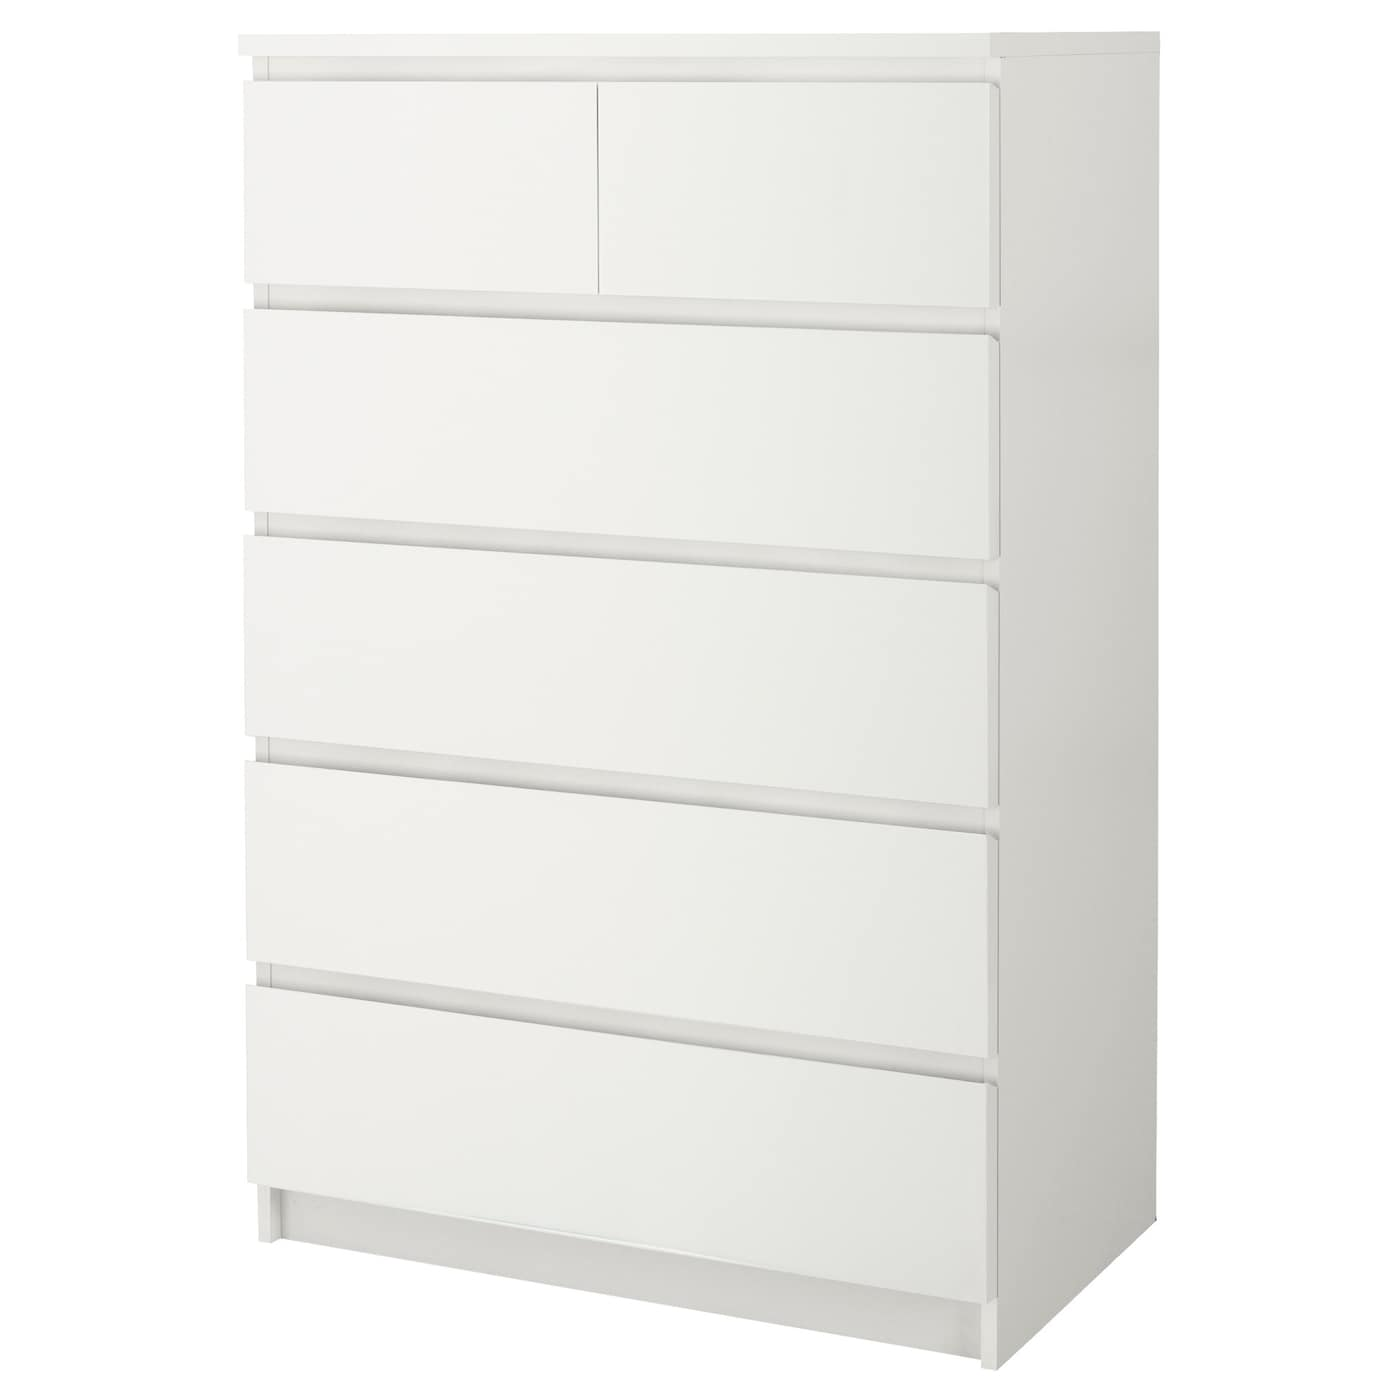 ikea malm bedroom furniture. ikea malm chest of 6 drawers smooth running with pullout stop ikea malm bedroom furniture d